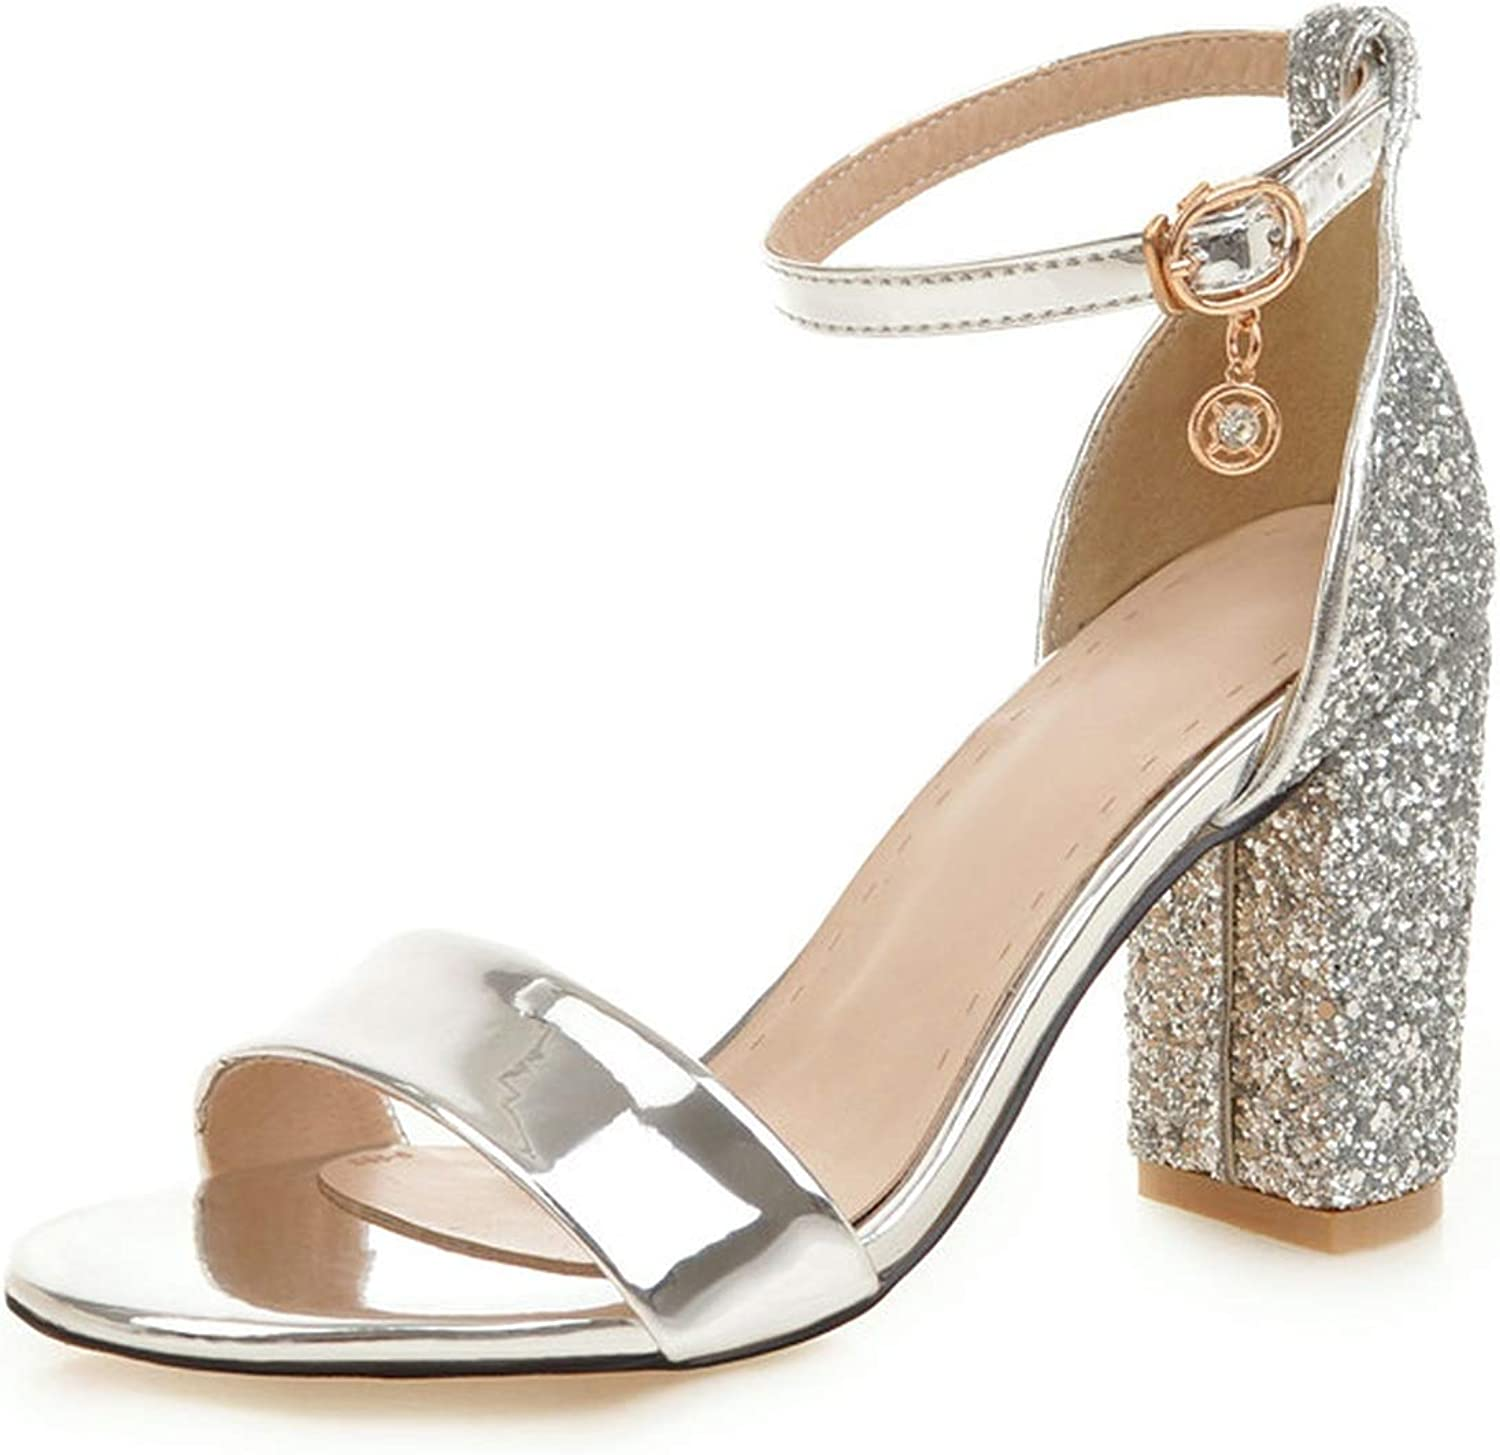 Surprise-Show Gladiator Sandals Summer High Heels 8 cm Sandal Casual gold Silver Wedding shoes